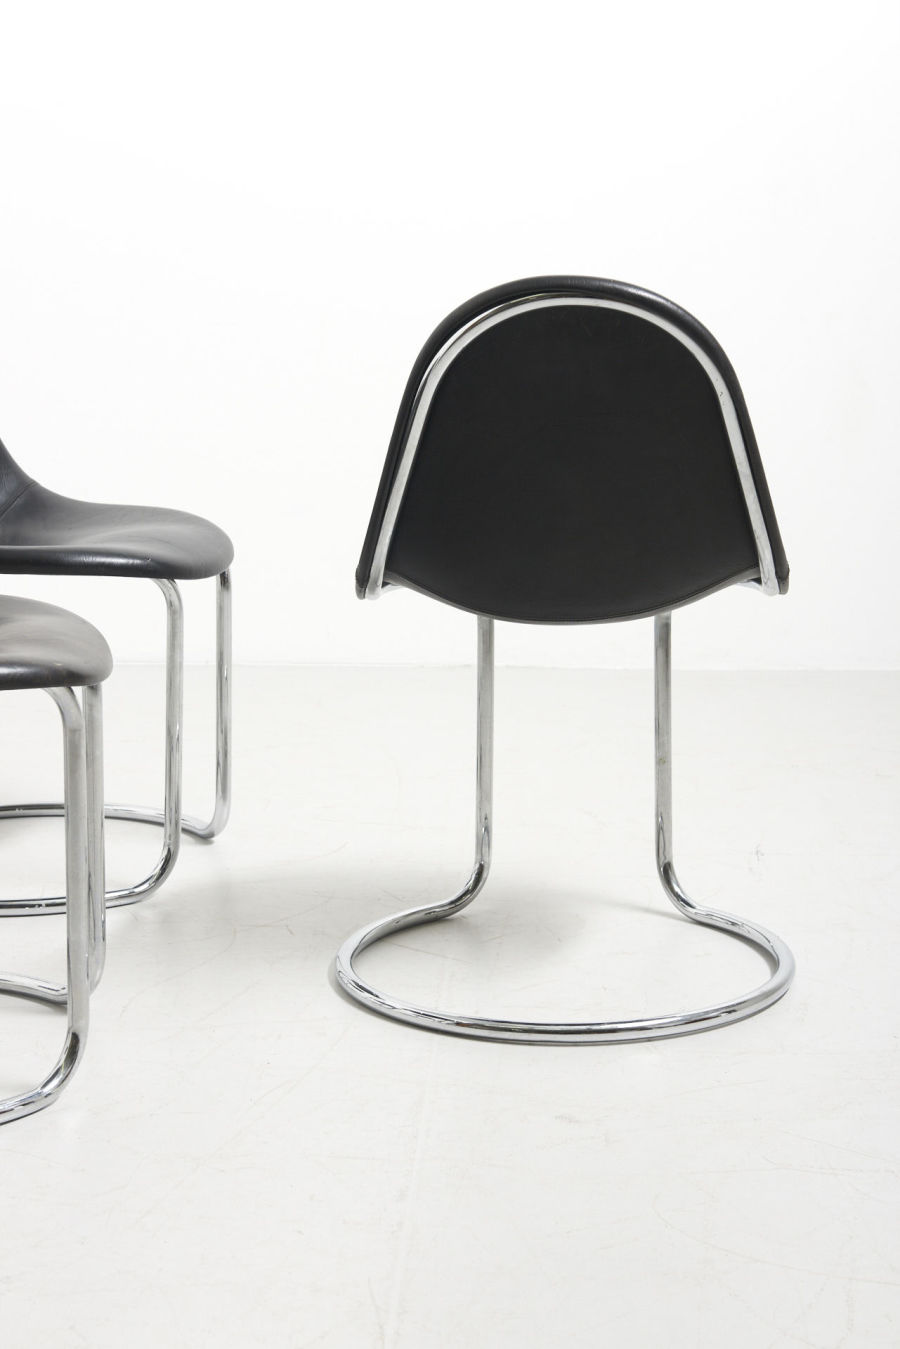 modestfurniture-vintage-2702-6-italian-dining-chairs-chrome-giotto-stoppino05